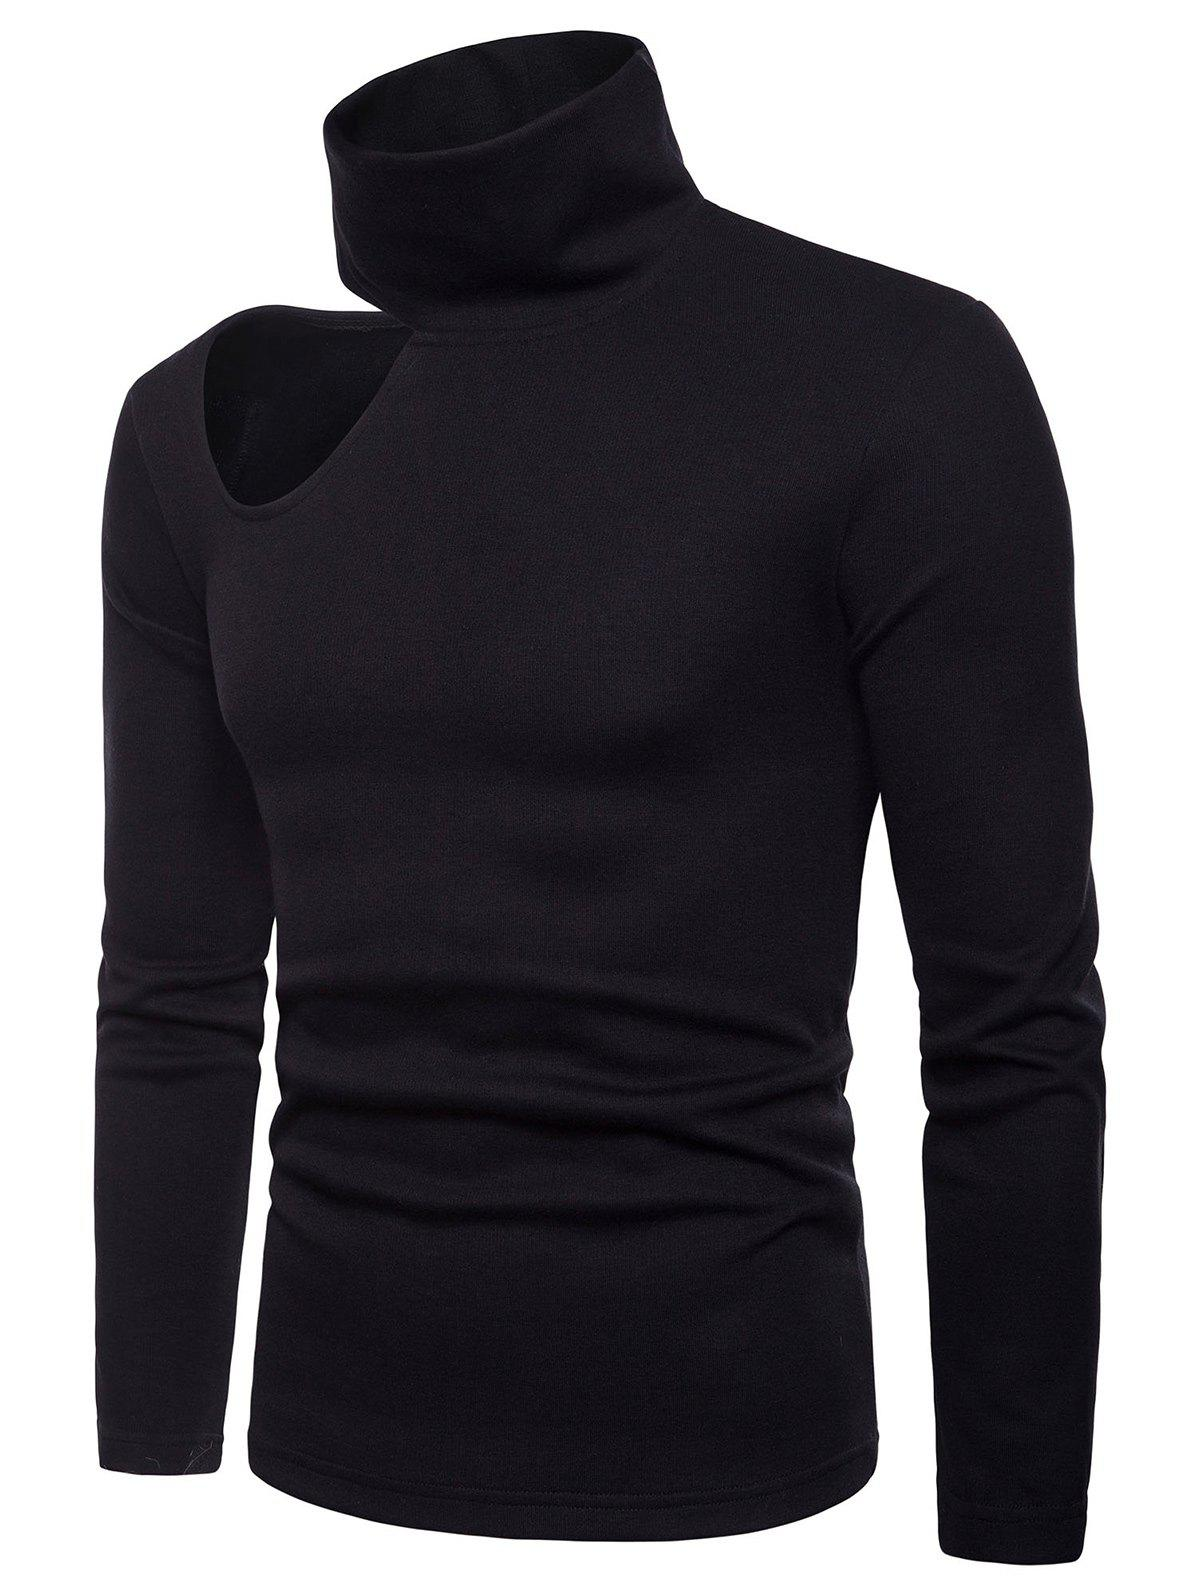 Whole Colored Side Off Shoulder Sweater - BLACK XL